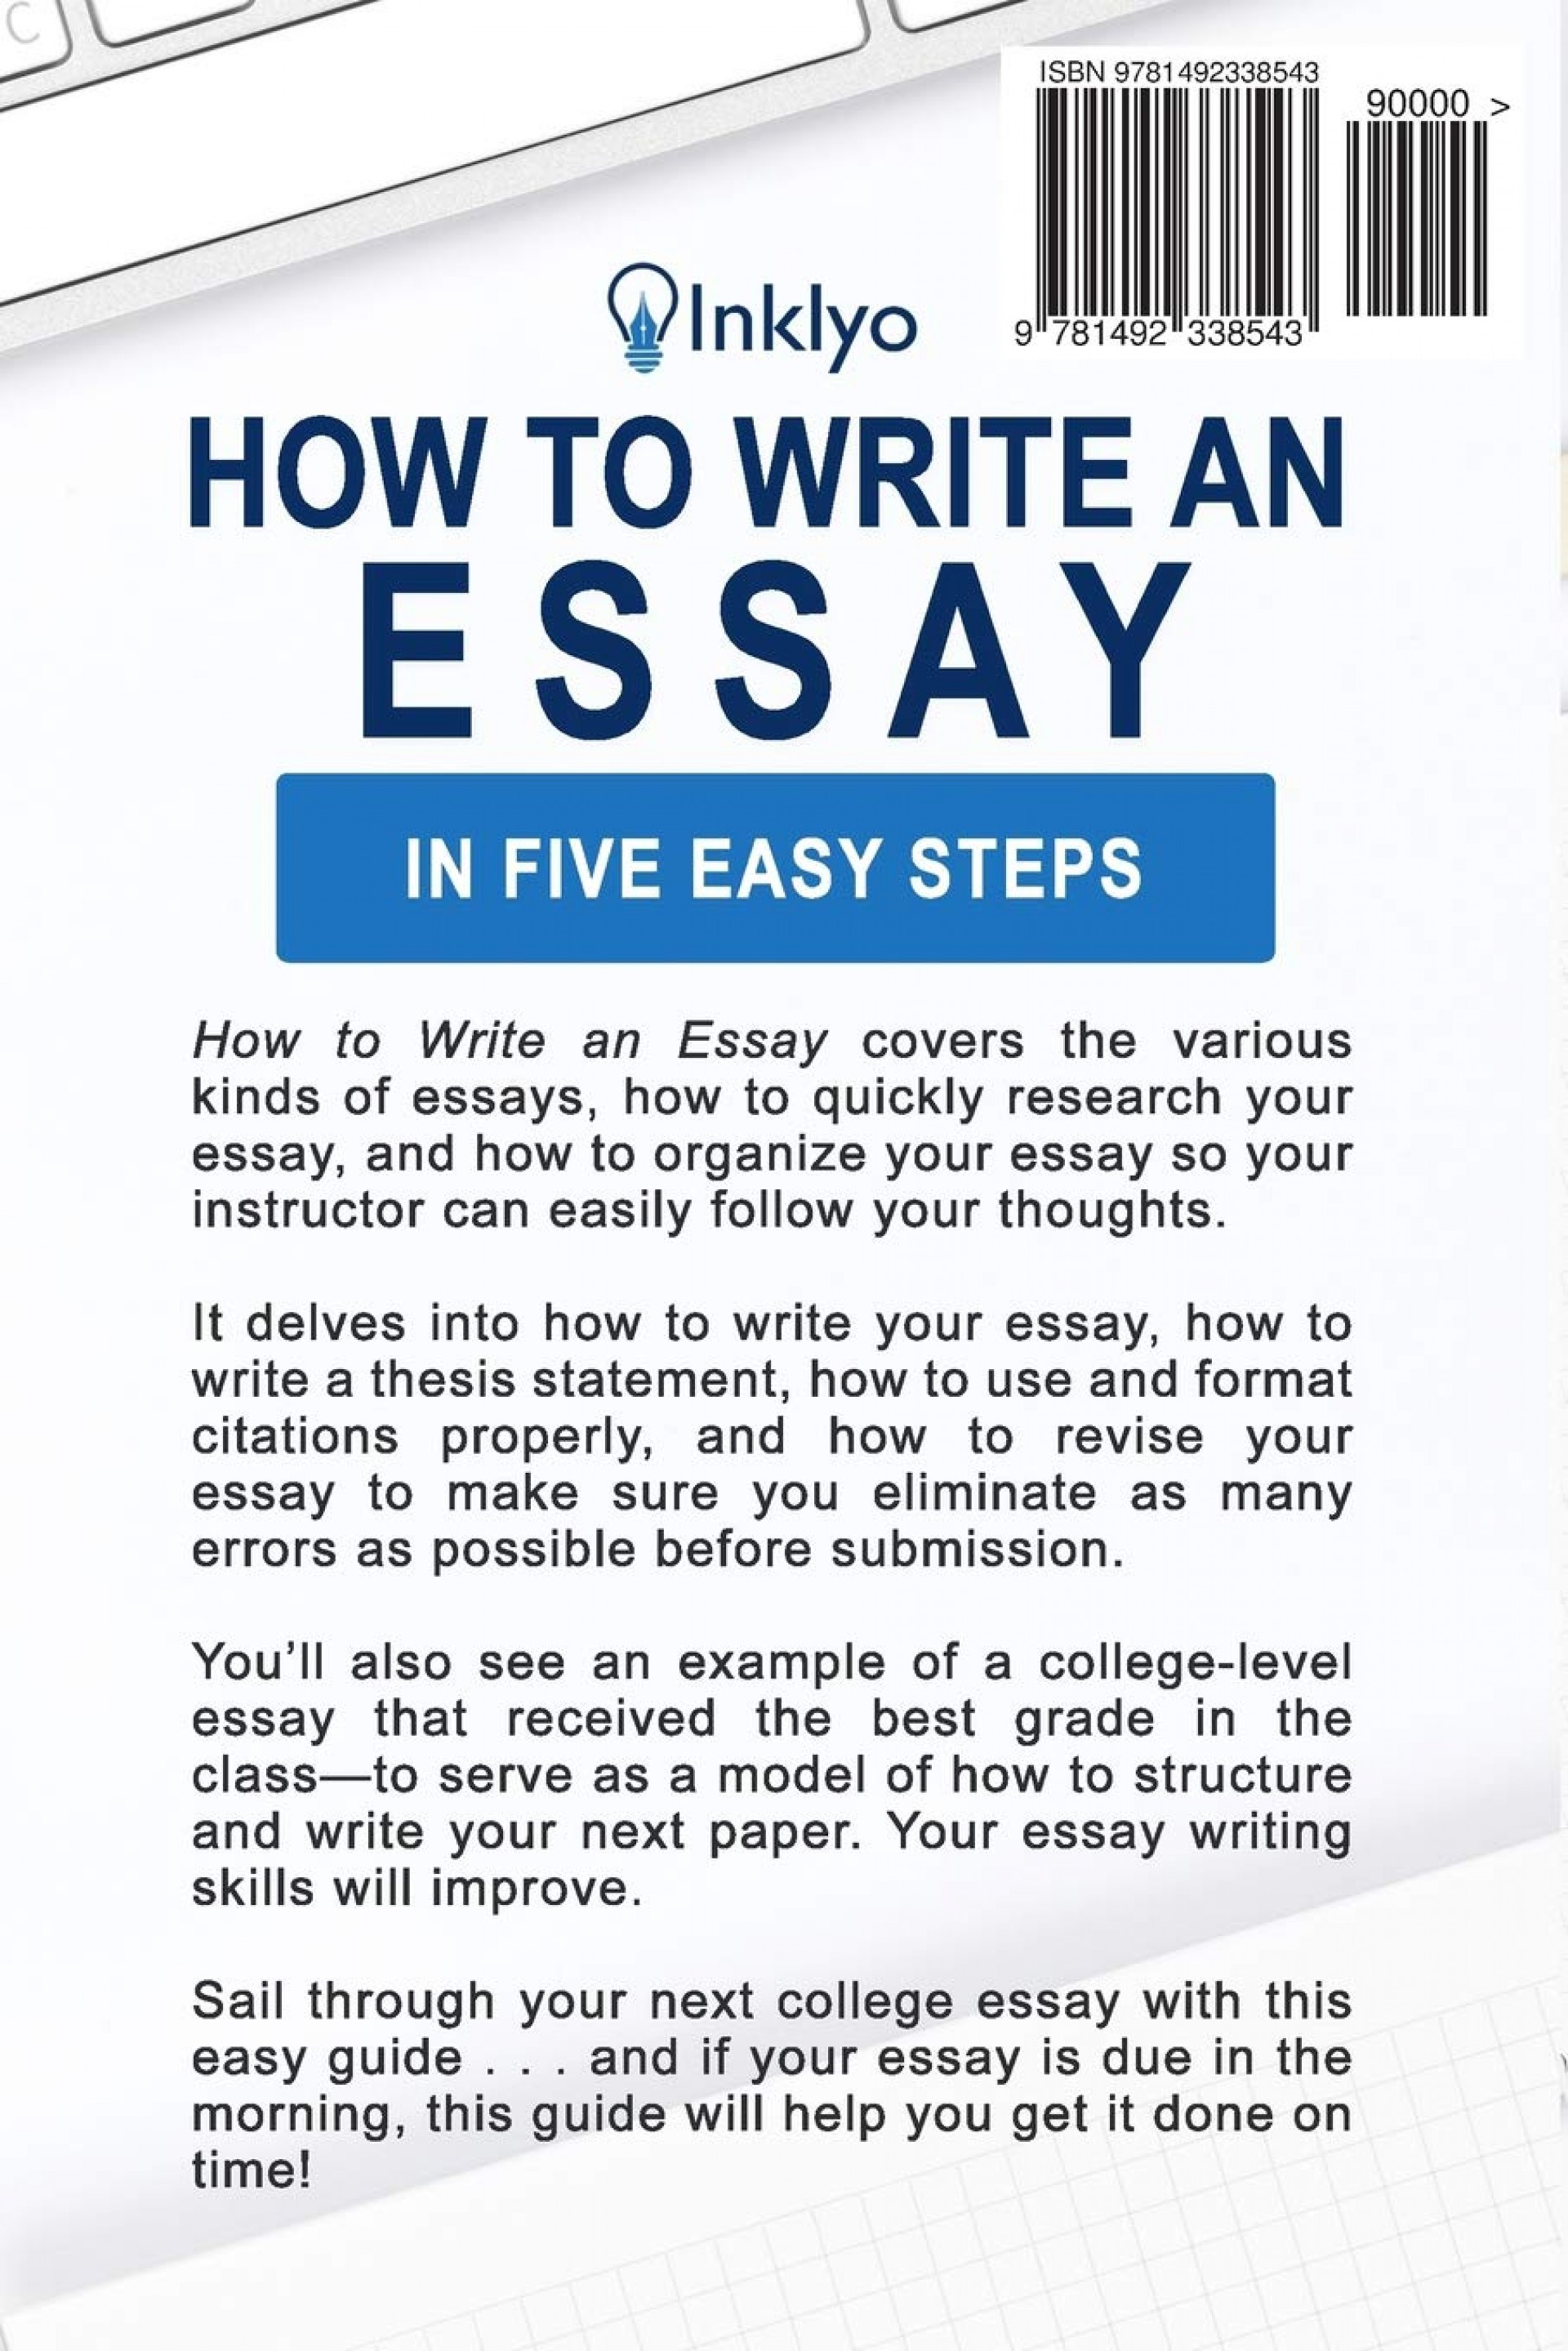 002 How To Write An Essay Example Shocking In Mla Format Word 2013 About Yourself For College Application 1920